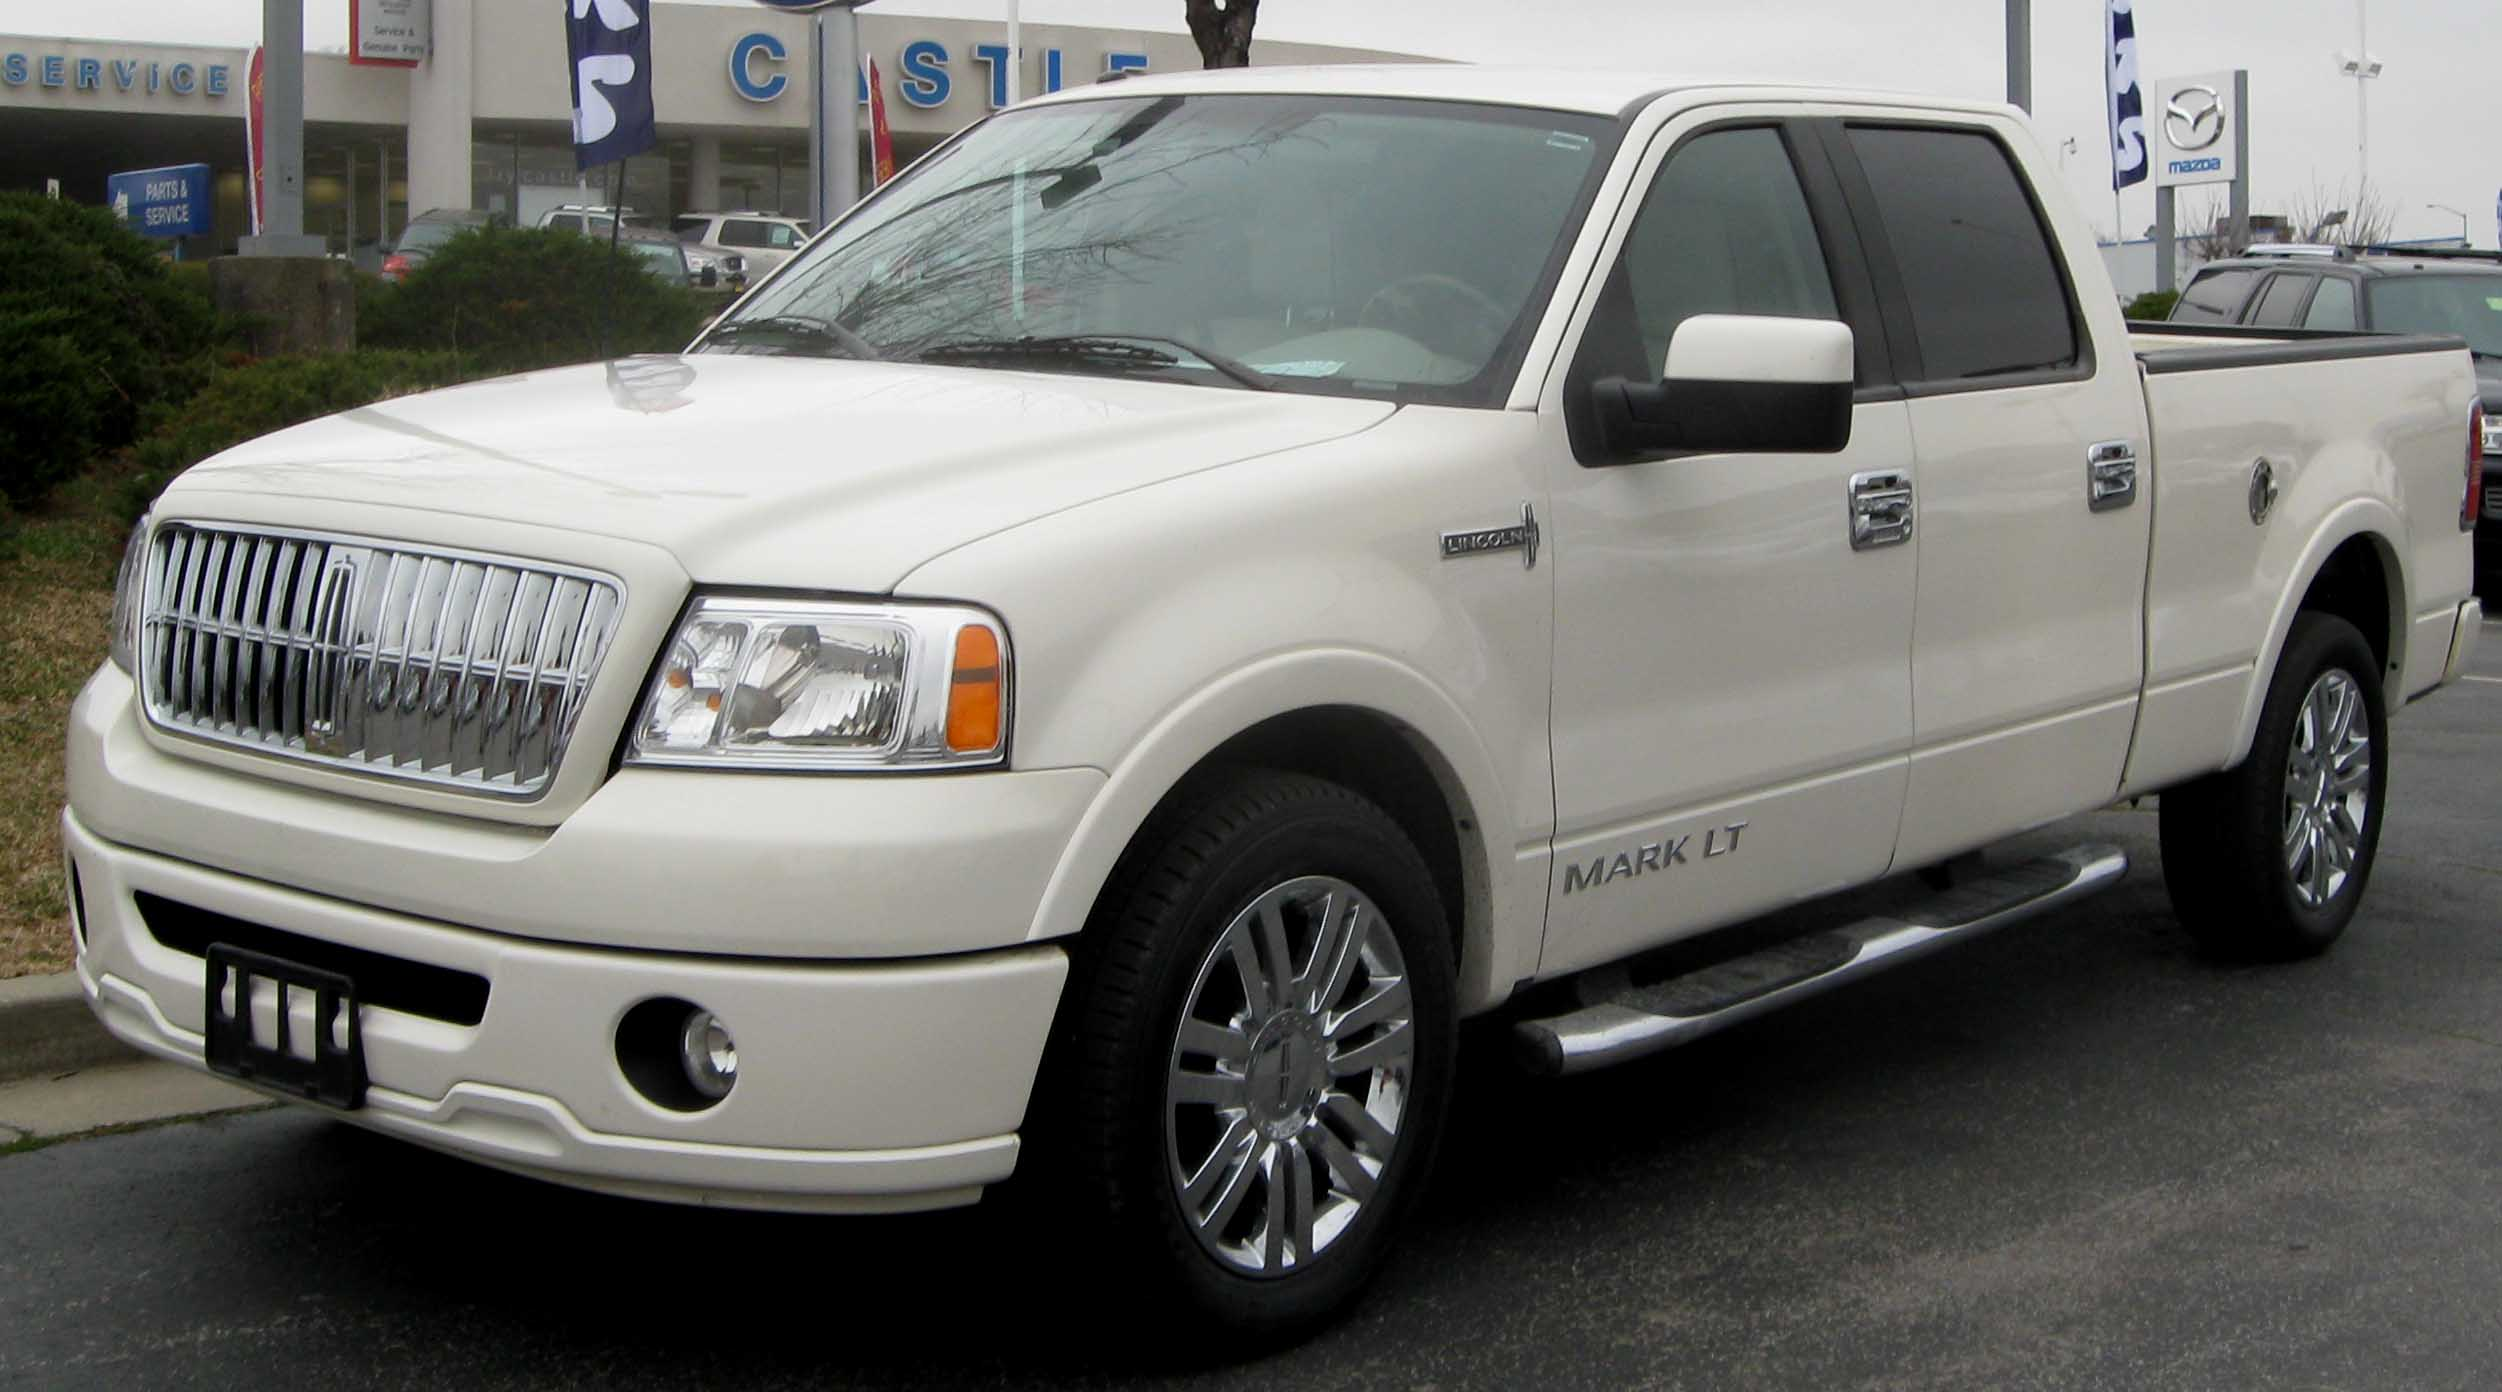 2008 Lincoln Mark LT Information And Photos MOMENTcar